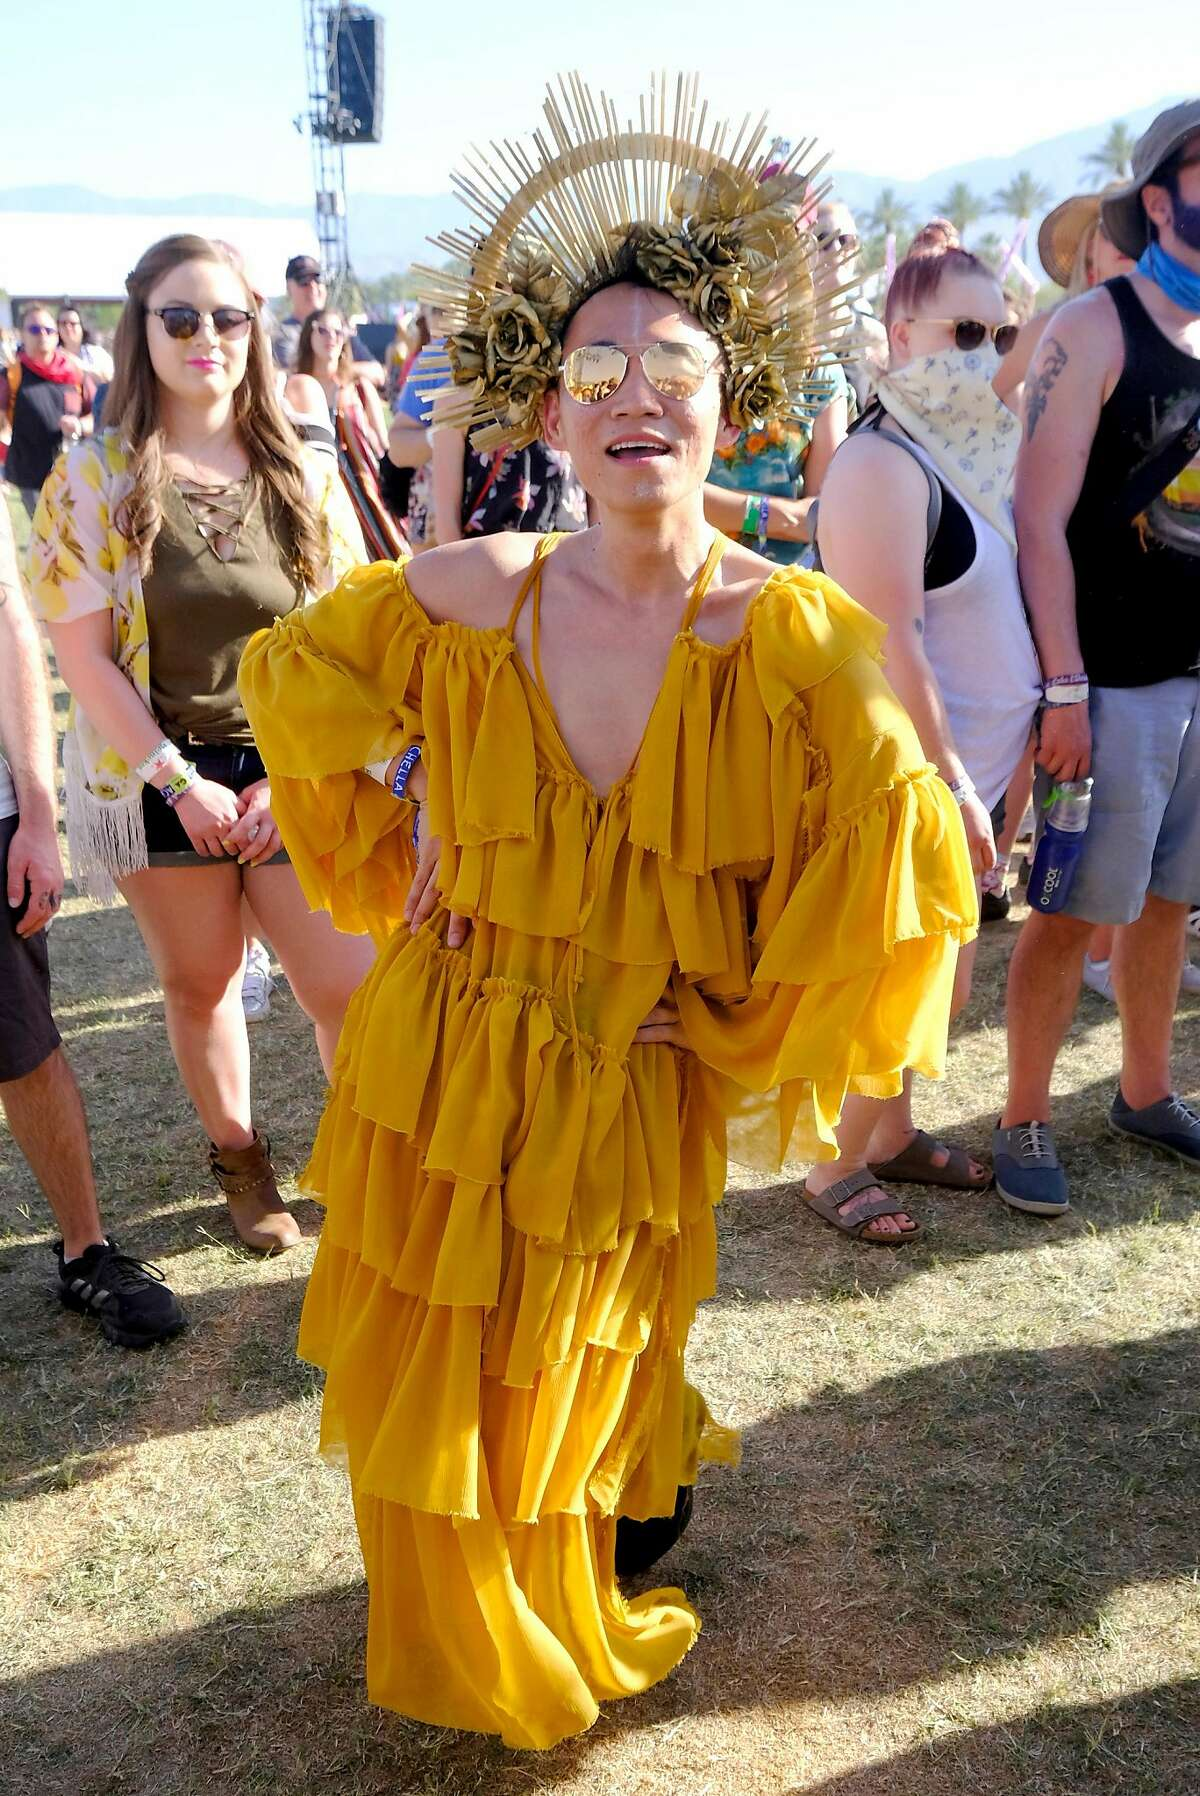 Festivalgoer attends 2018 Coachella Valley Music And Arts Festival Weekend 1 at the Empire Polo Field on April 14, 2018 in Indio, California.